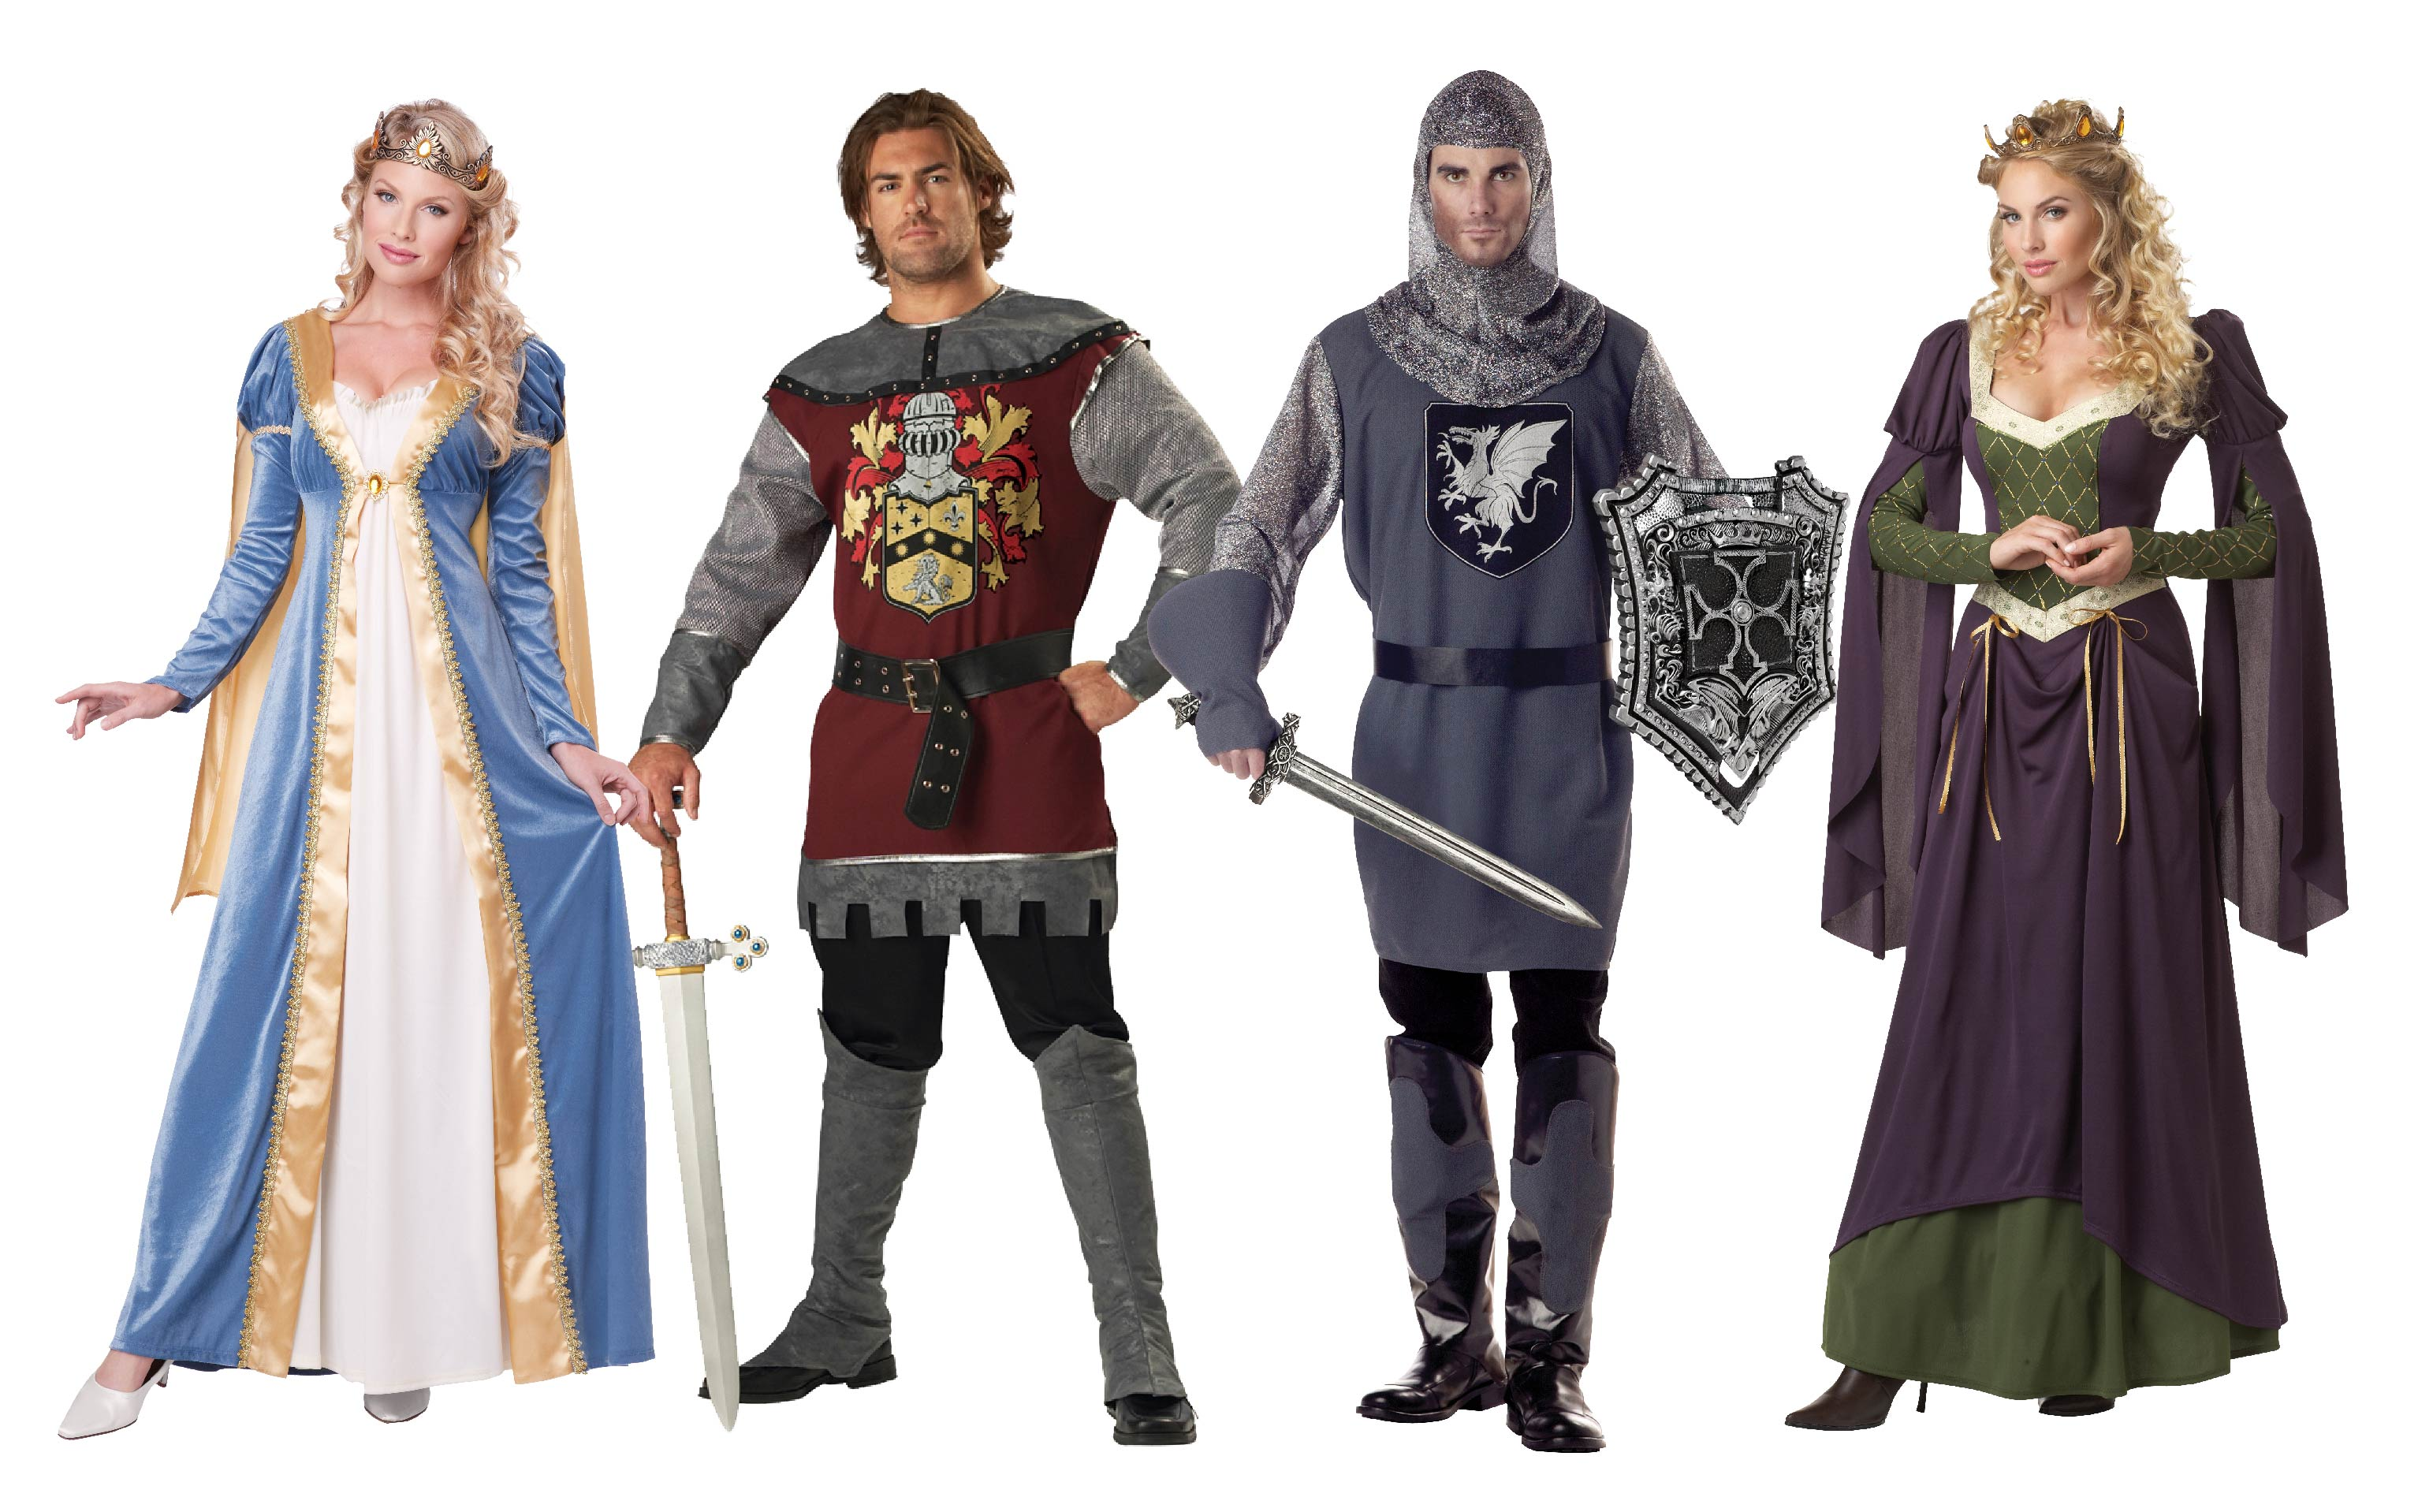 Group costume of Noble Knights and medieval Princesses.